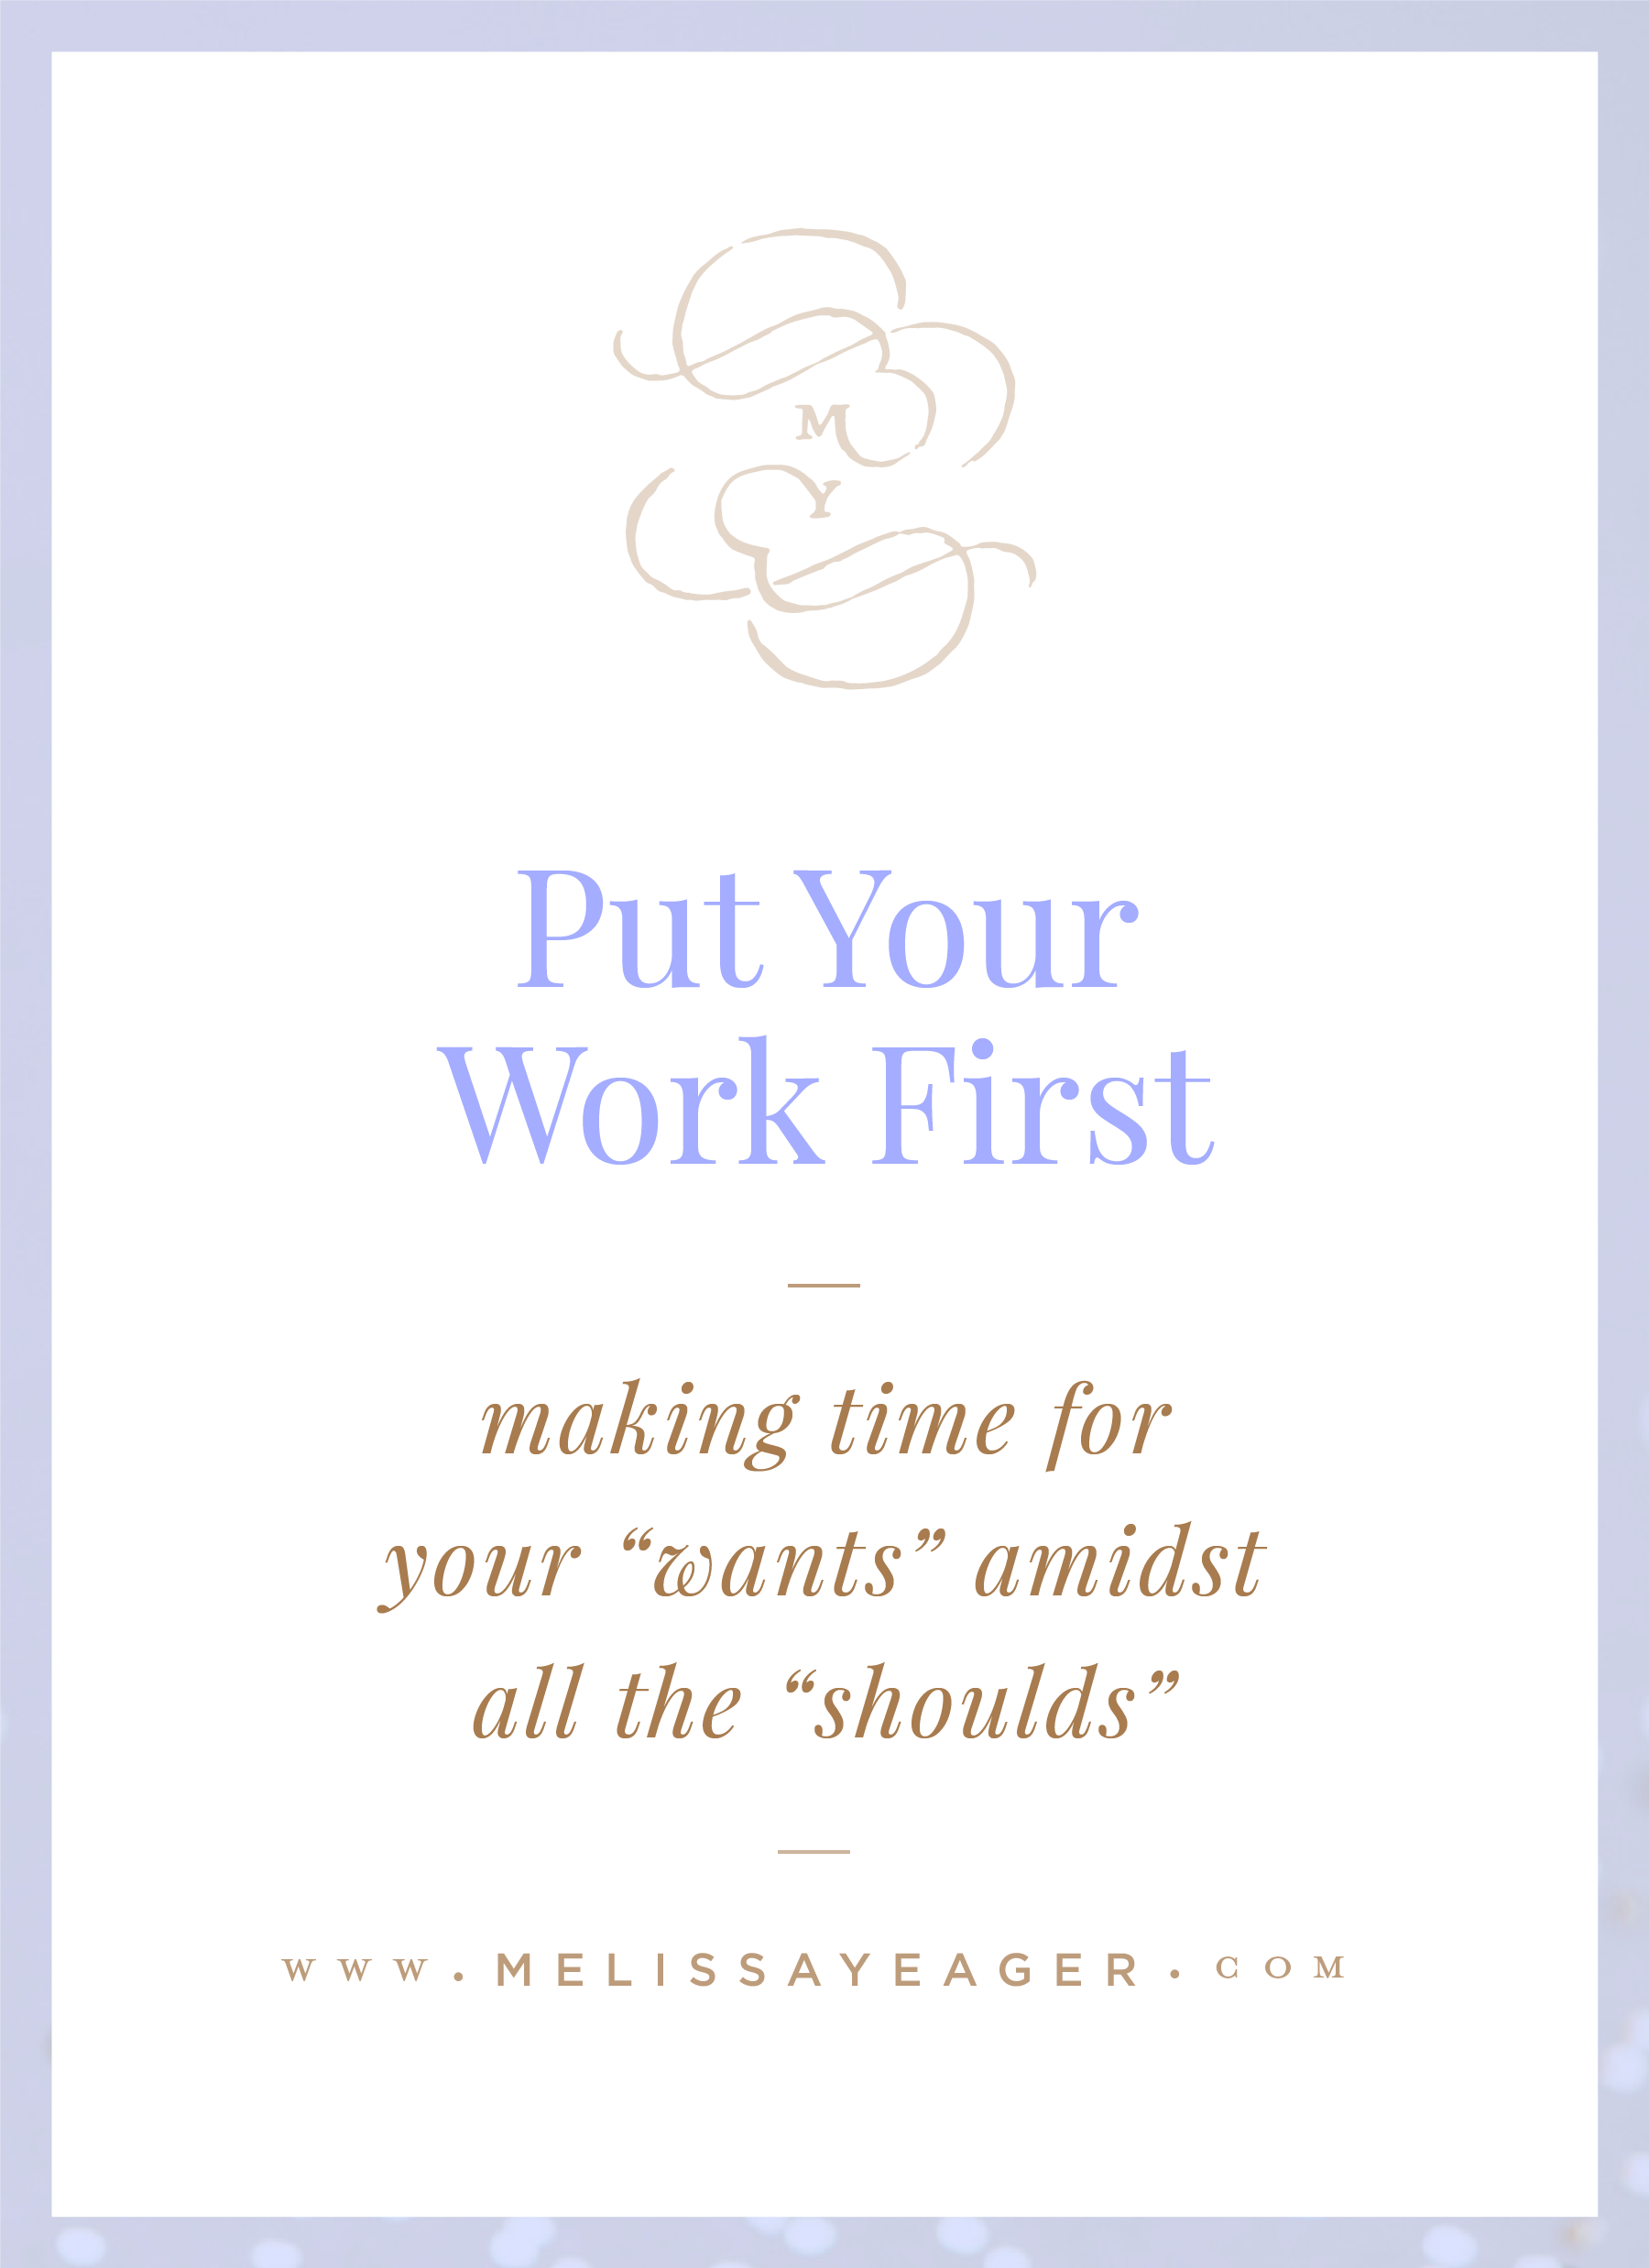 """Put Your Work First - making time for your """"wants"""" amidst all the """"shoulds"""""""